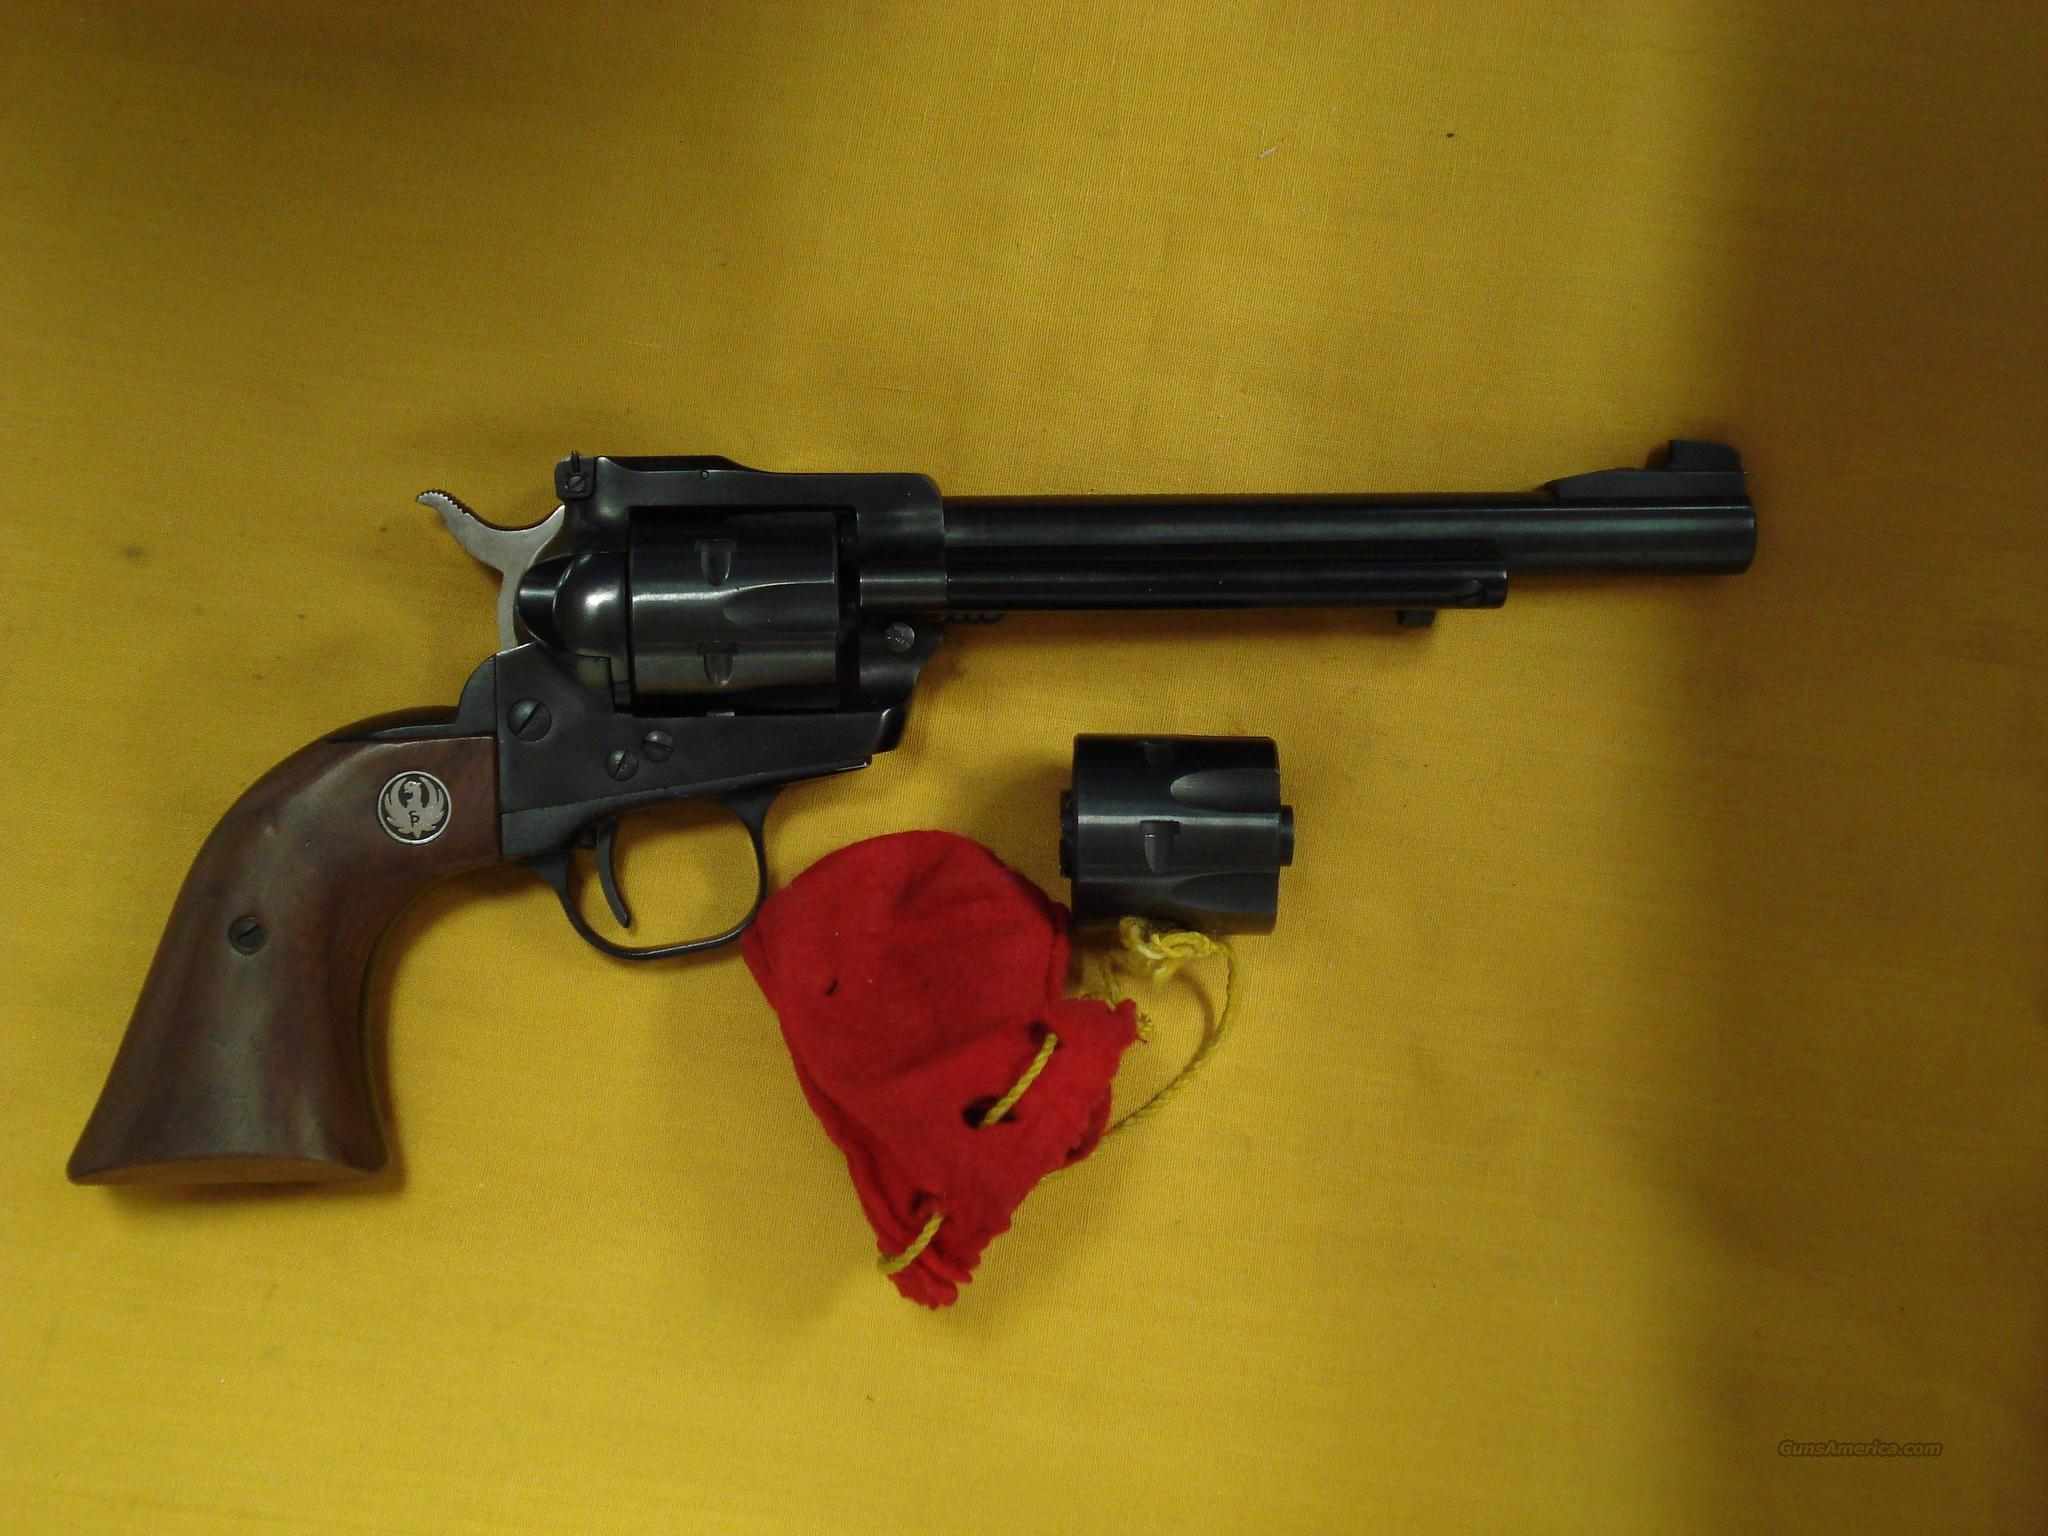 RUGER SINGLE SIX CONVERTABLE .22LR/22MAG  Guns > Pistols > Ruger Single Action Revolvers > Single Six Type